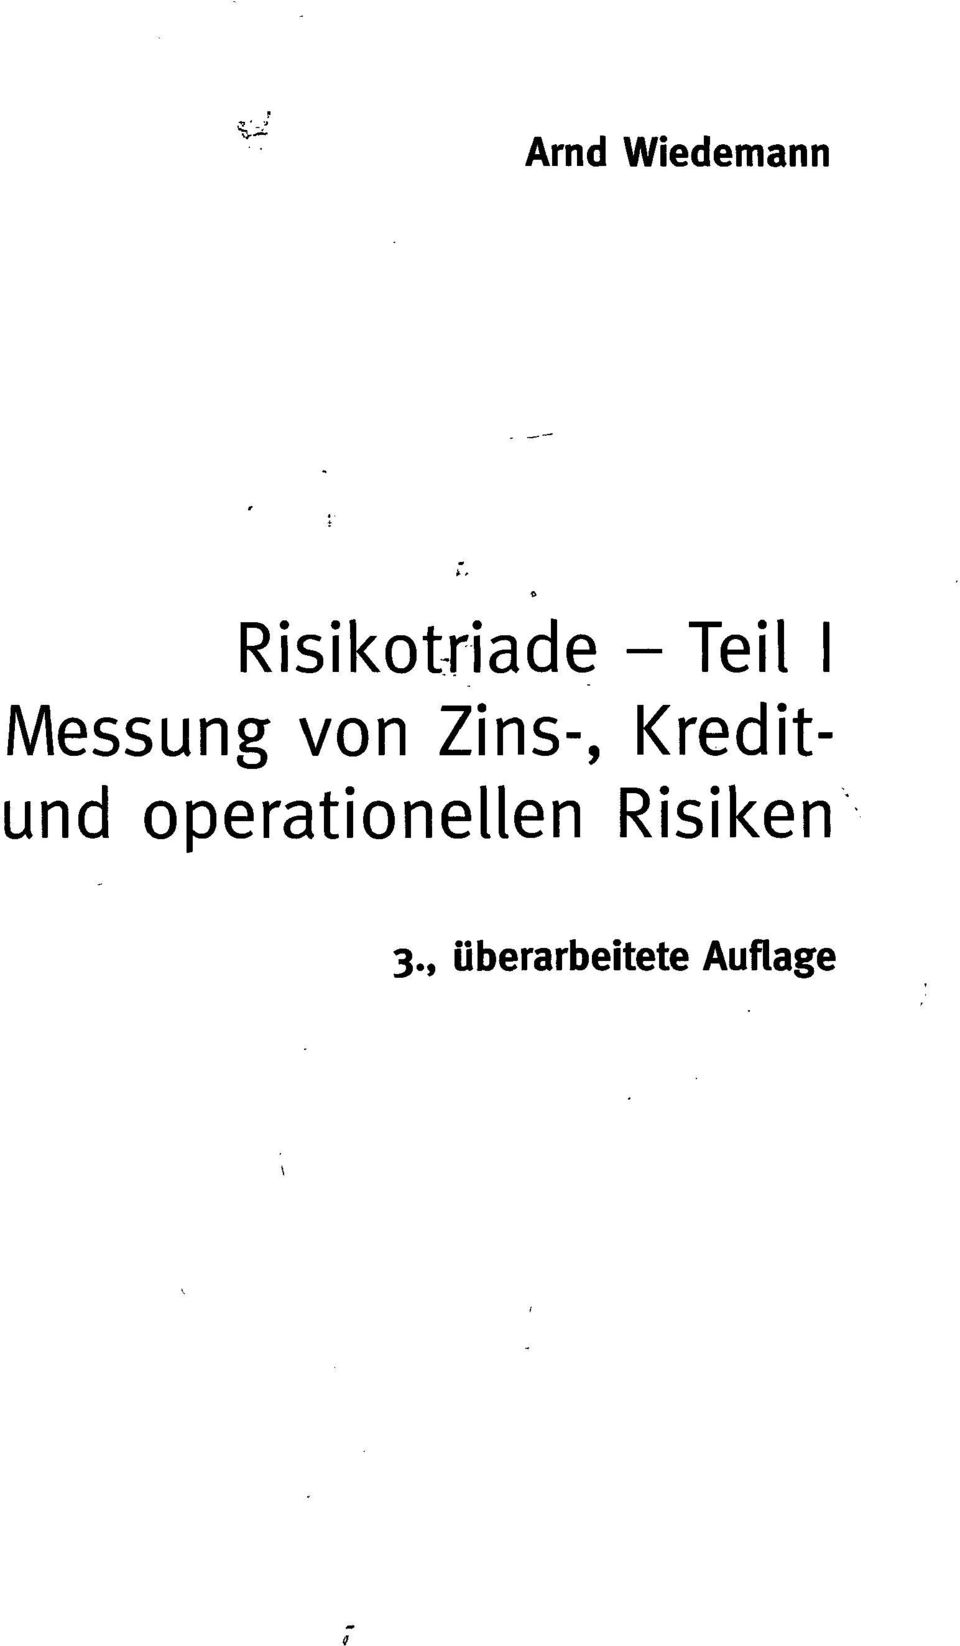 Kreditund operationellen